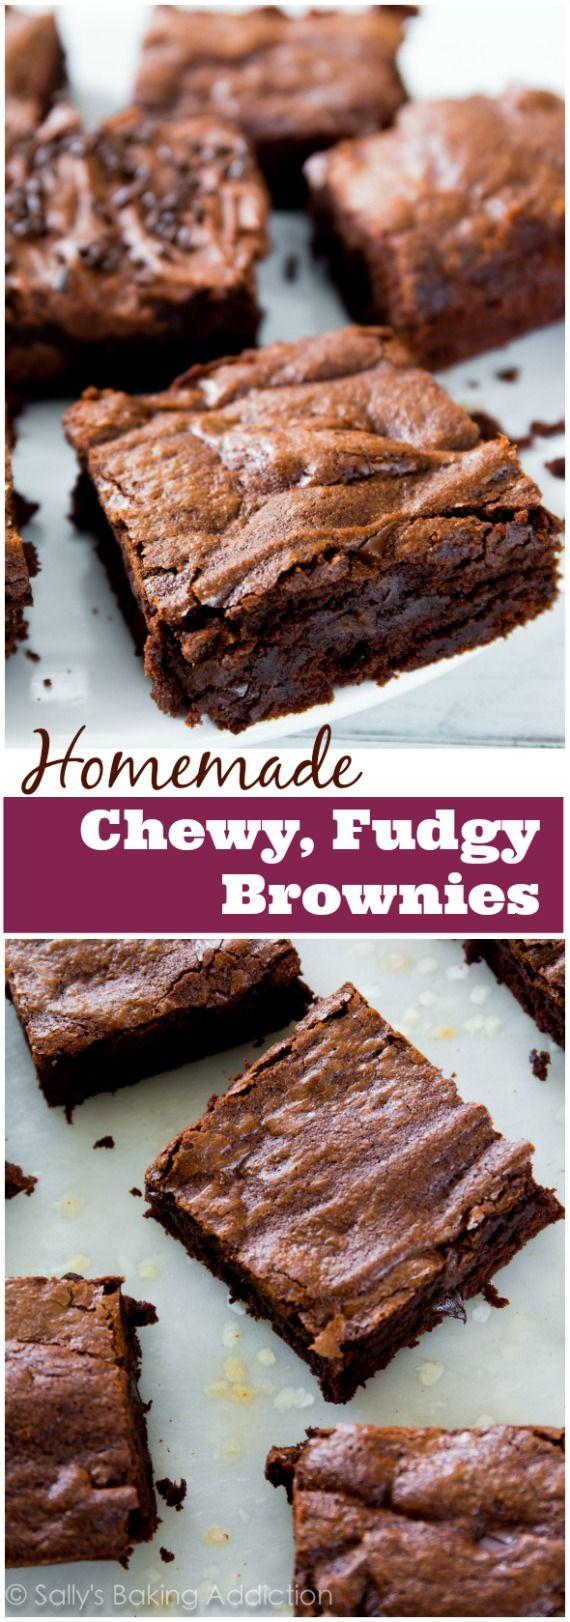 Chewy fudgy homemade brownies made completely from scratch. Try them with chocolate frosting on top! You will never make a box mix again.